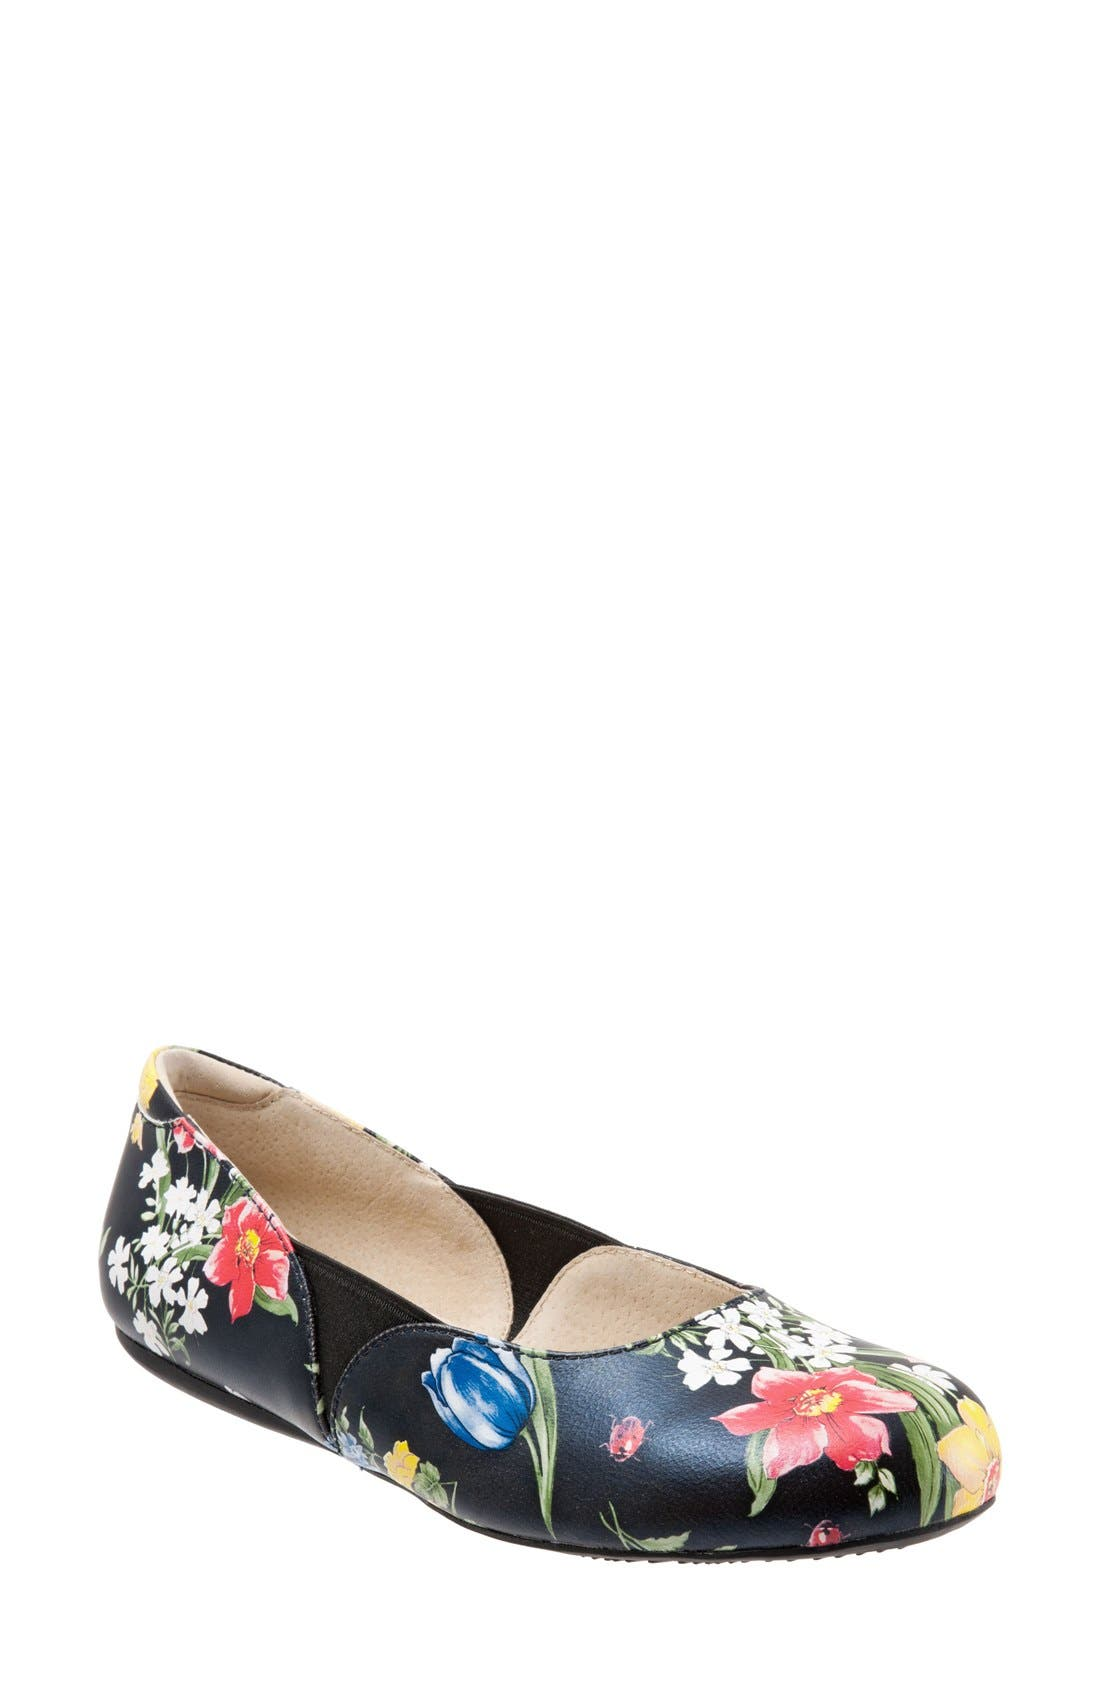 'Norwich' Flat,                         Main,                         color, Midnight Floral Leather